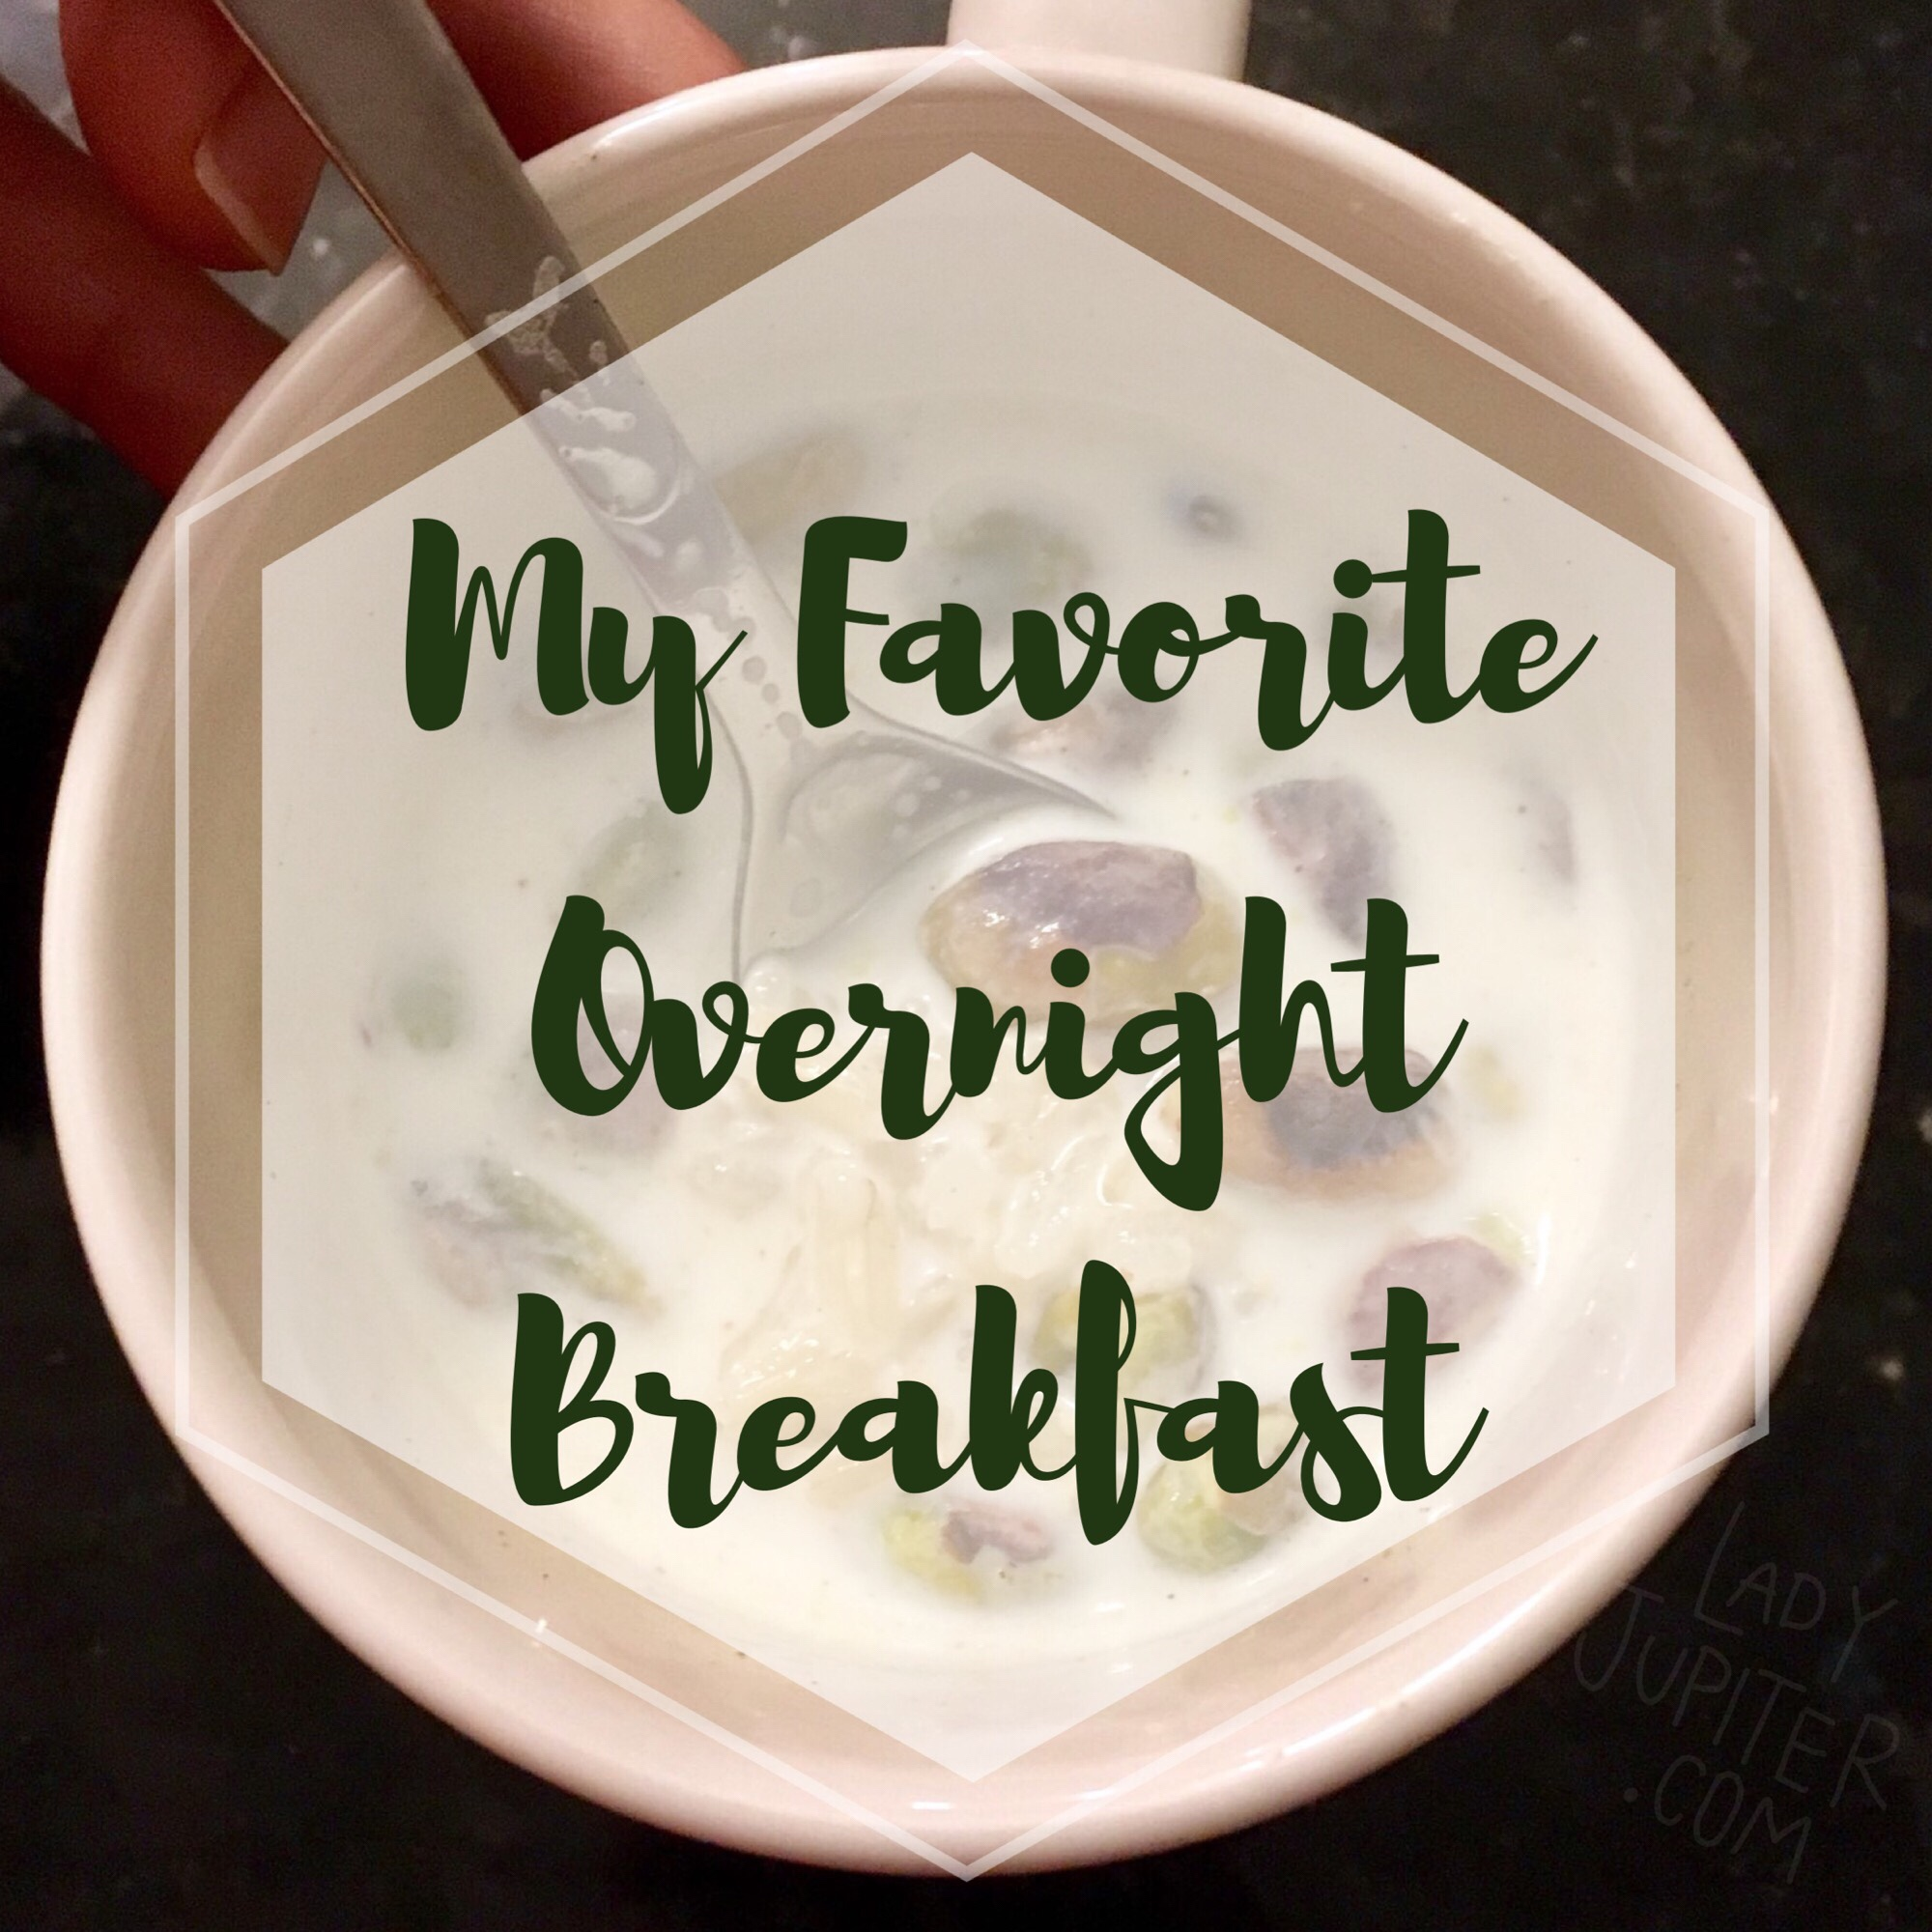 Overnight breakfast matters. Oatmeal gets boring. Here's my favorite single serving mug breakfast #mugbreakfast #indianricepudding #recipe